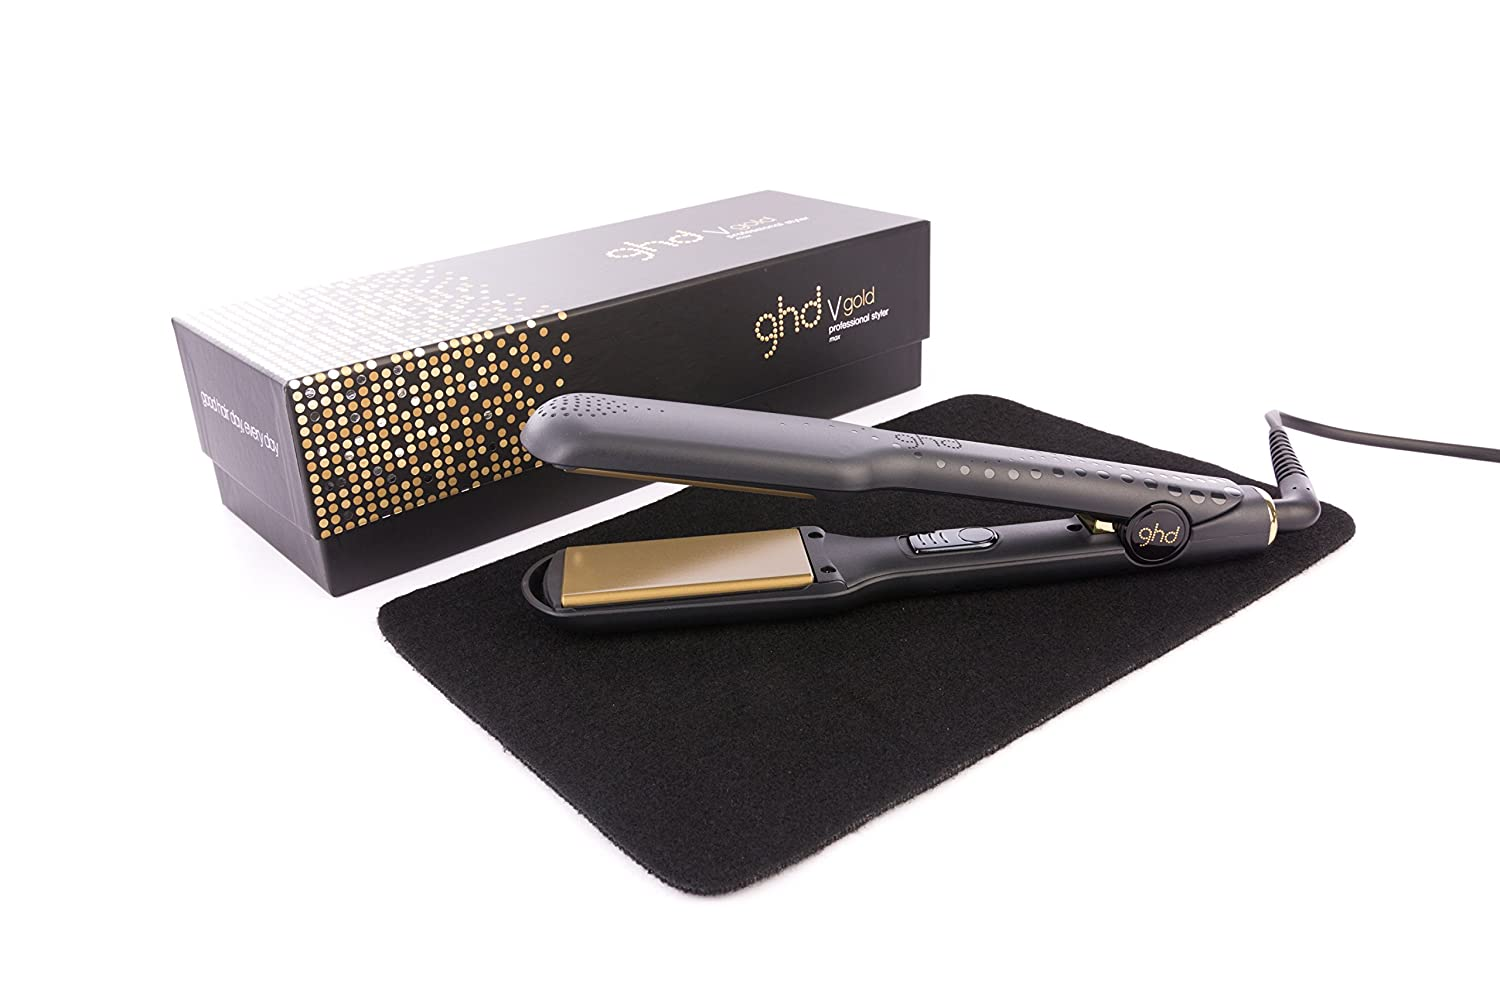 GHD Max Gold V Mark 5 Styler with Mateque Heat Mat (Packaging May Vary from Picture) 2018 Packaging